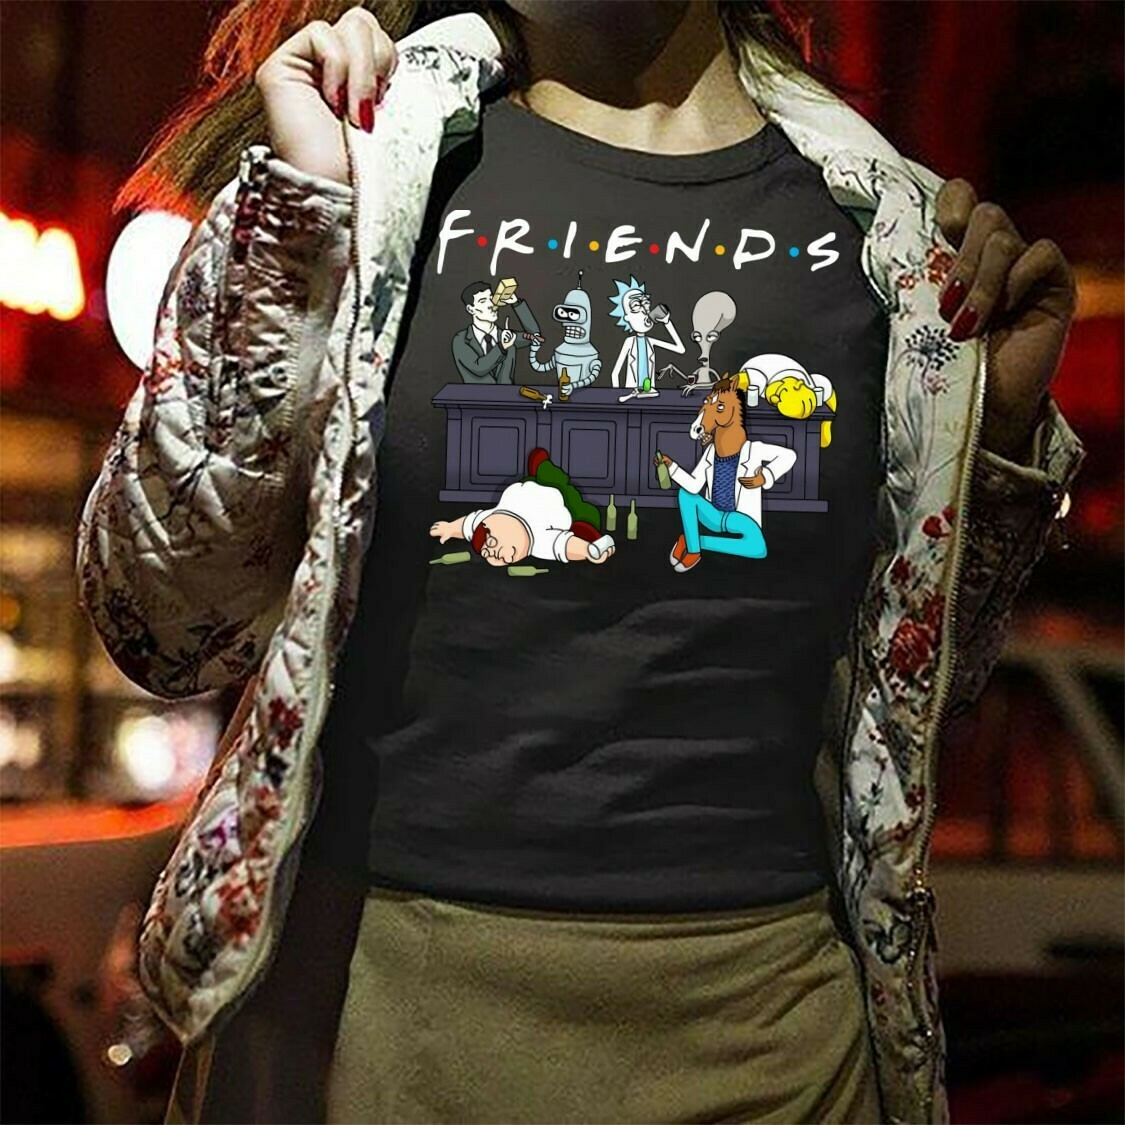 Friends Rick and Morty Simpson On Cartoon Network Drink Wine Halloween Impressive Perfect Gifts Idea For Yourself And Friends Squad T-Shirt Long Sleeve Sweatshirt Hoodie Jolly Family Gifts